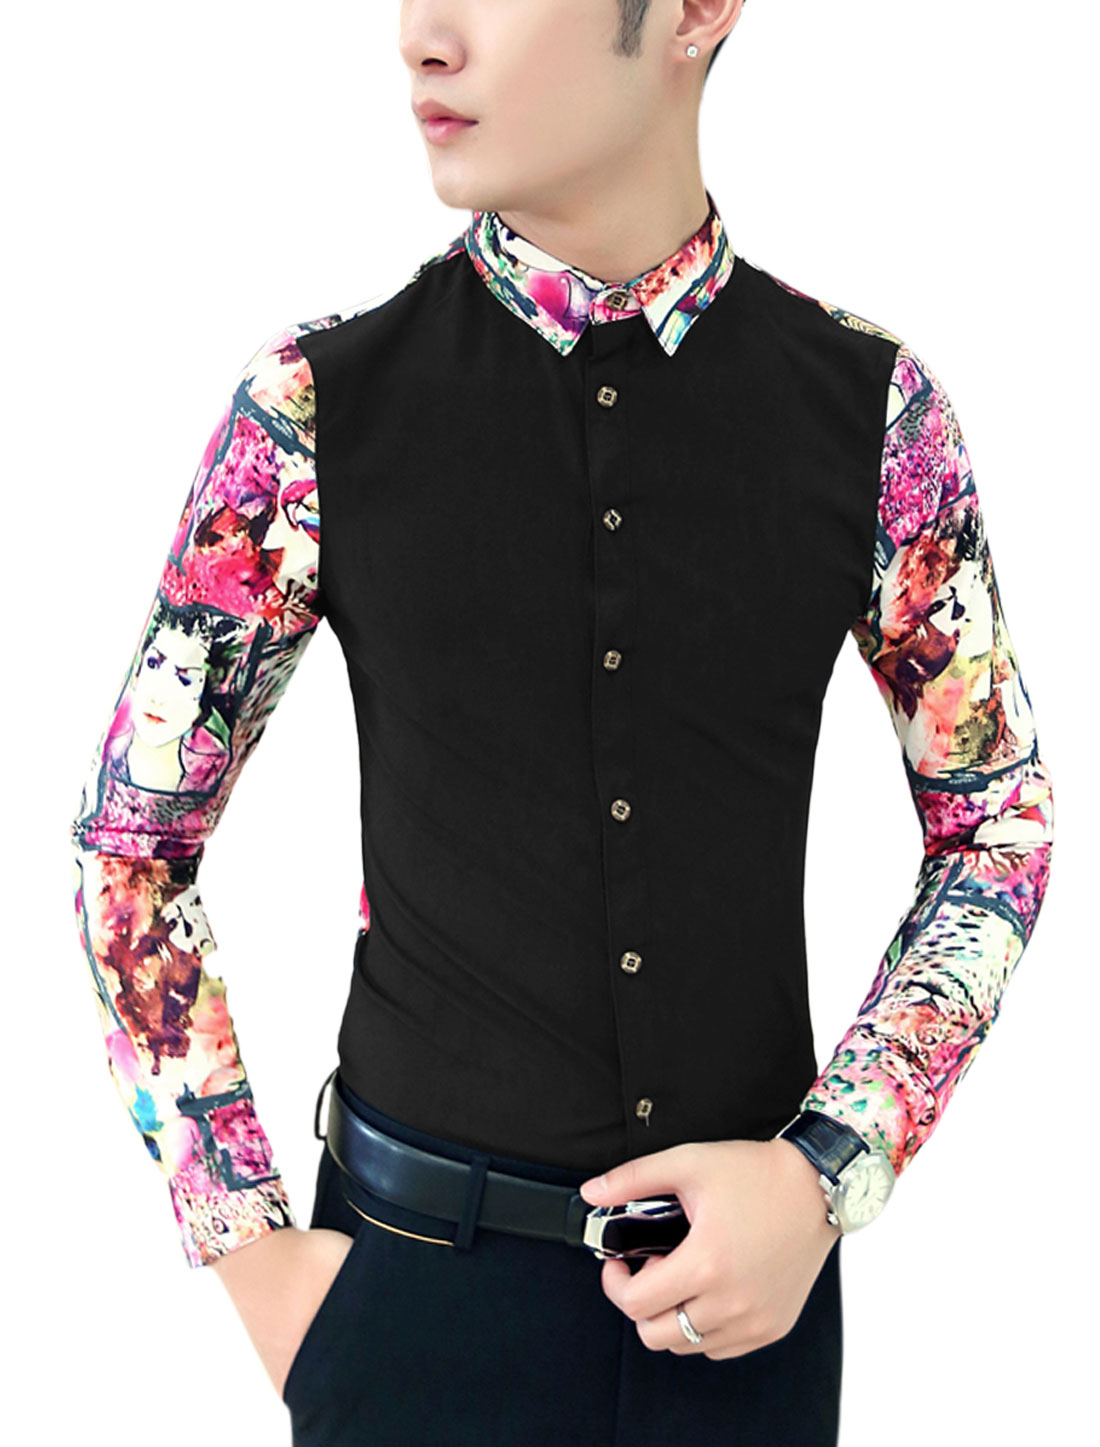 Men Contrast Back Contrast Novelty Portrait Print Shirt Black Fuchsia M